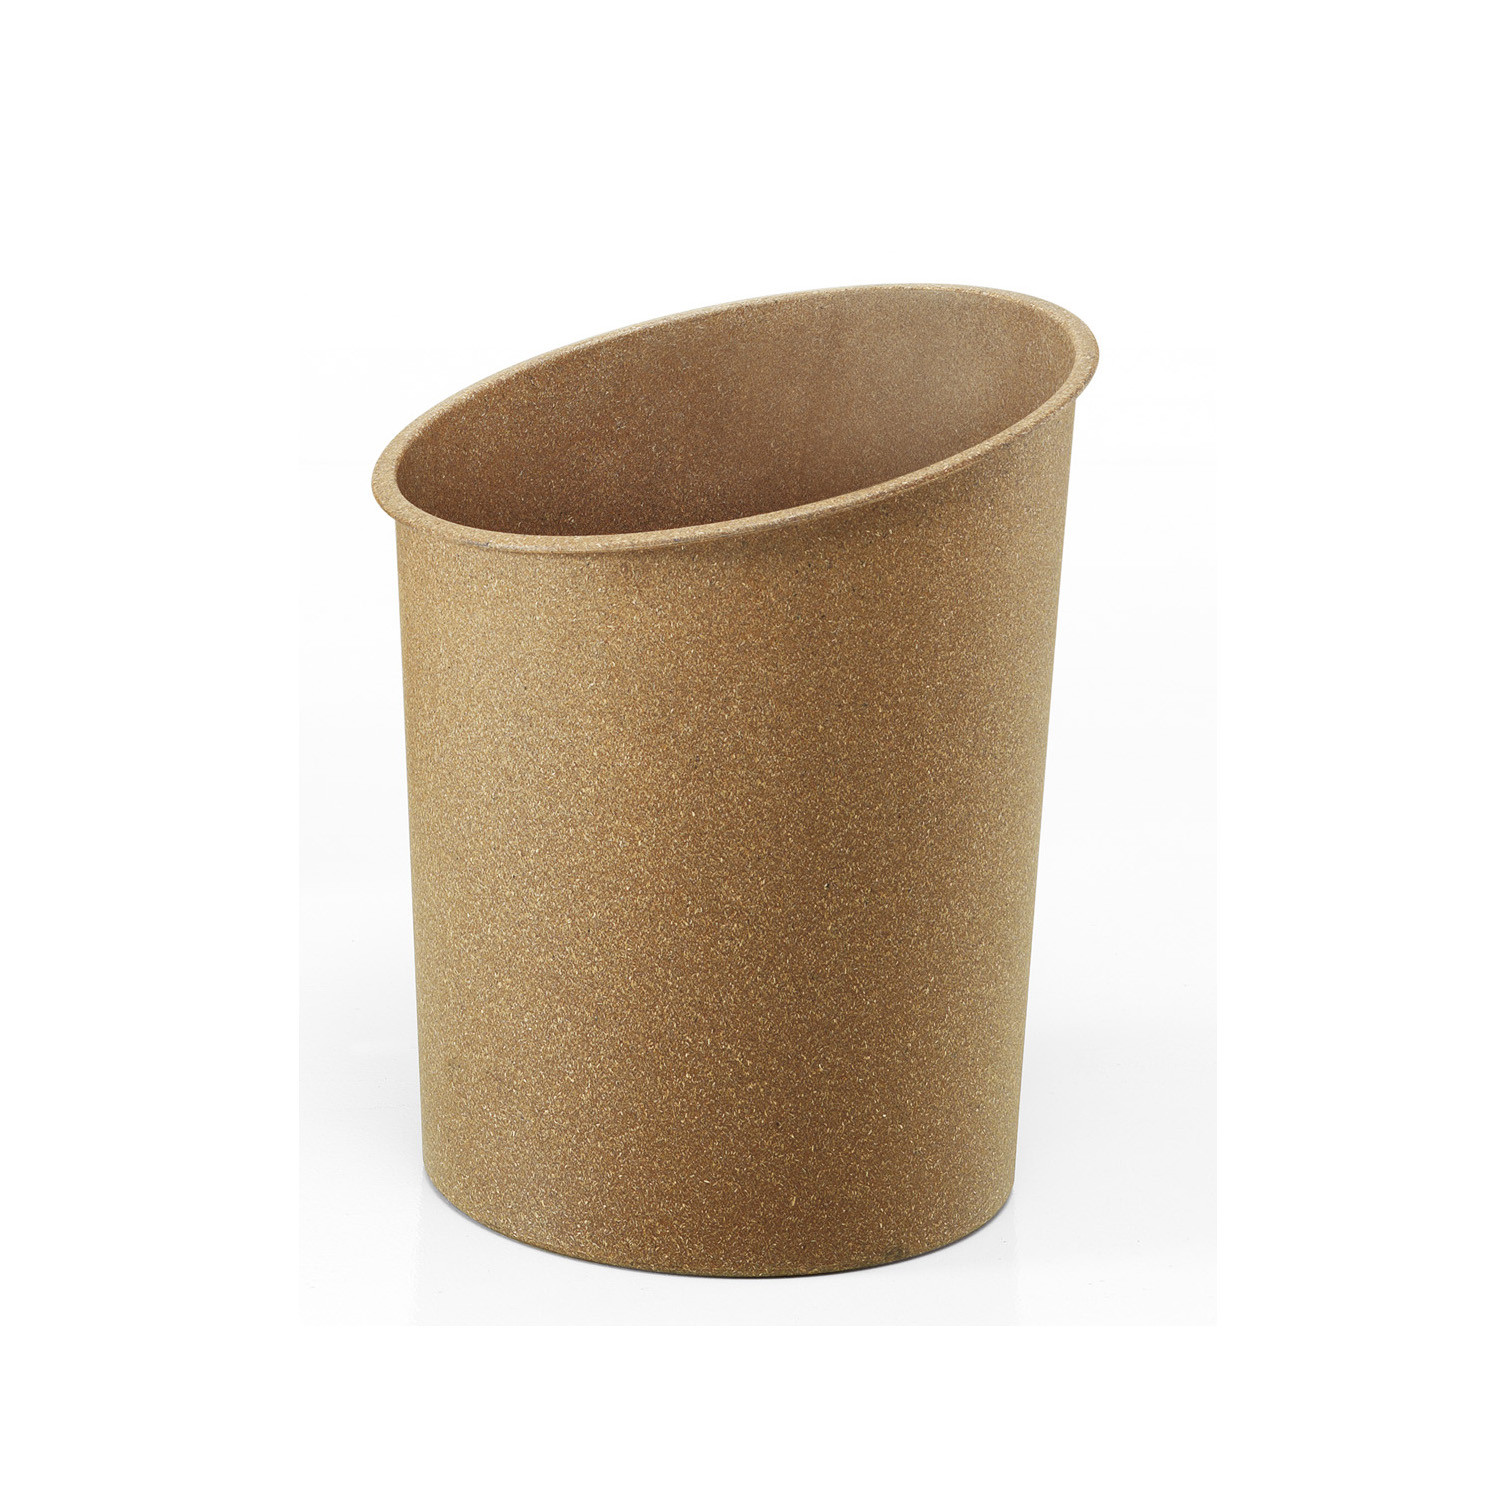 ECO Recycled Paper Bins by Apres